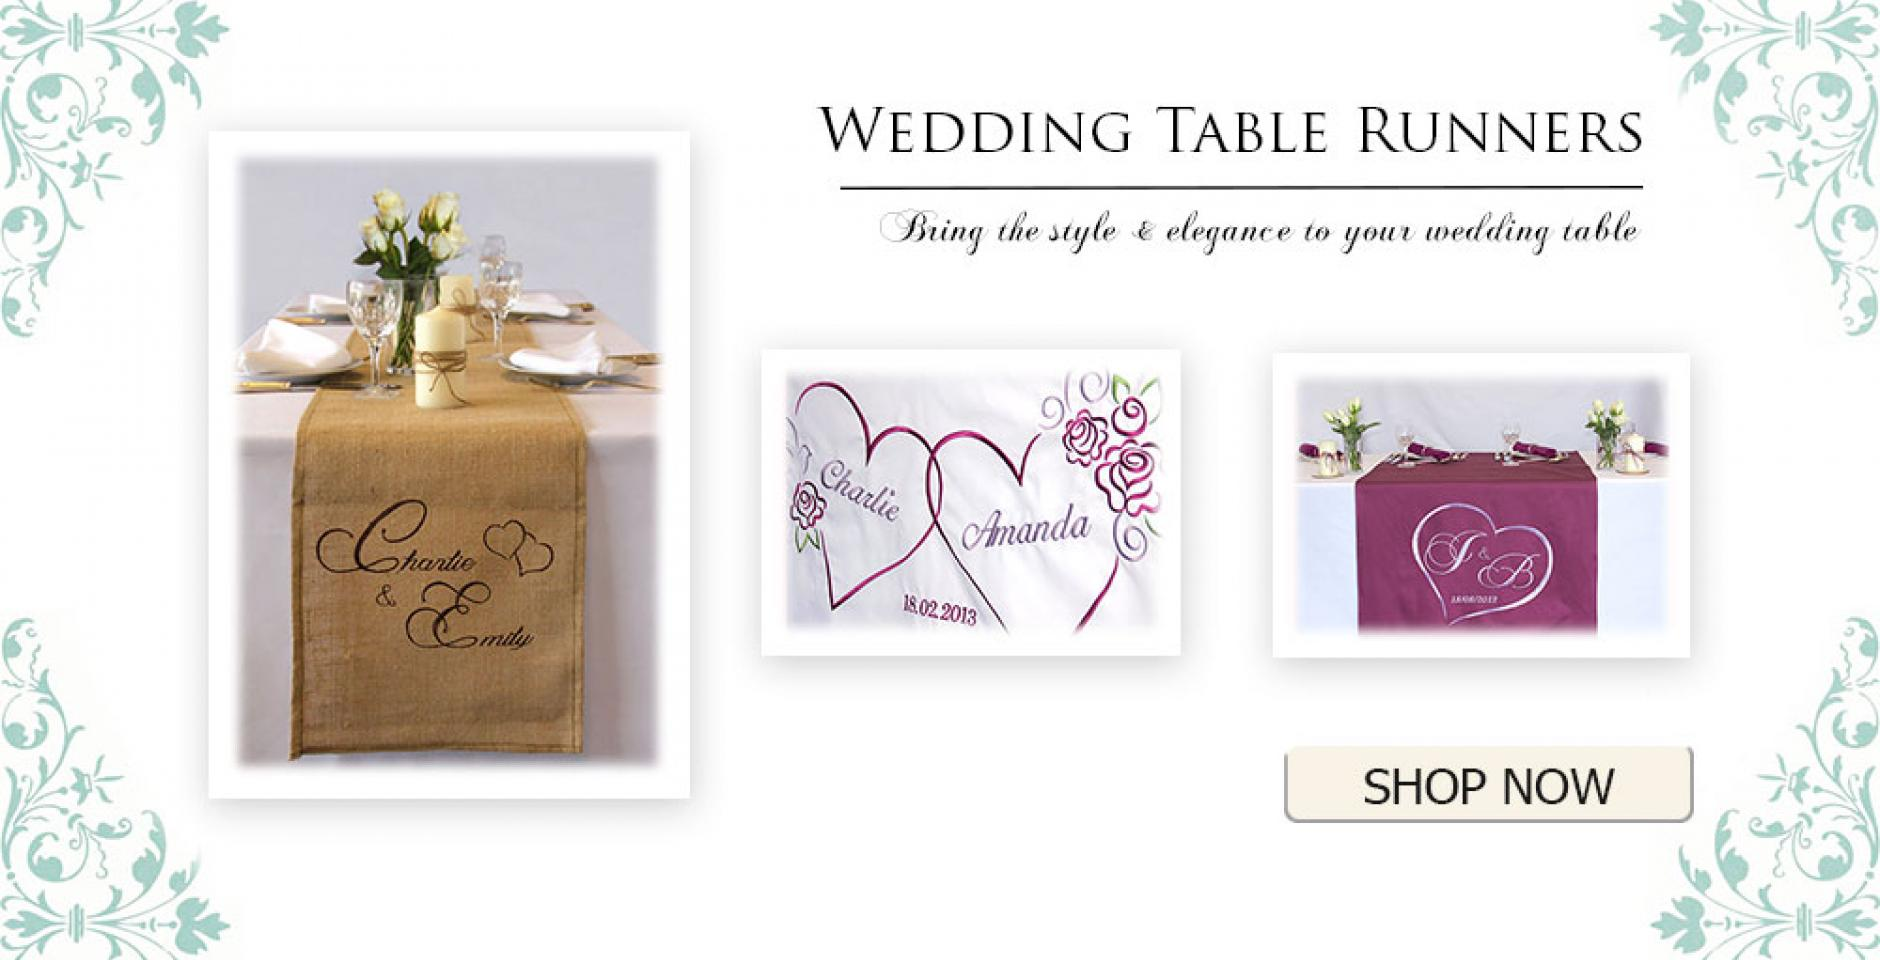 Wedding Gifts For Runners : Personalised Gift Shop WithCongratulations